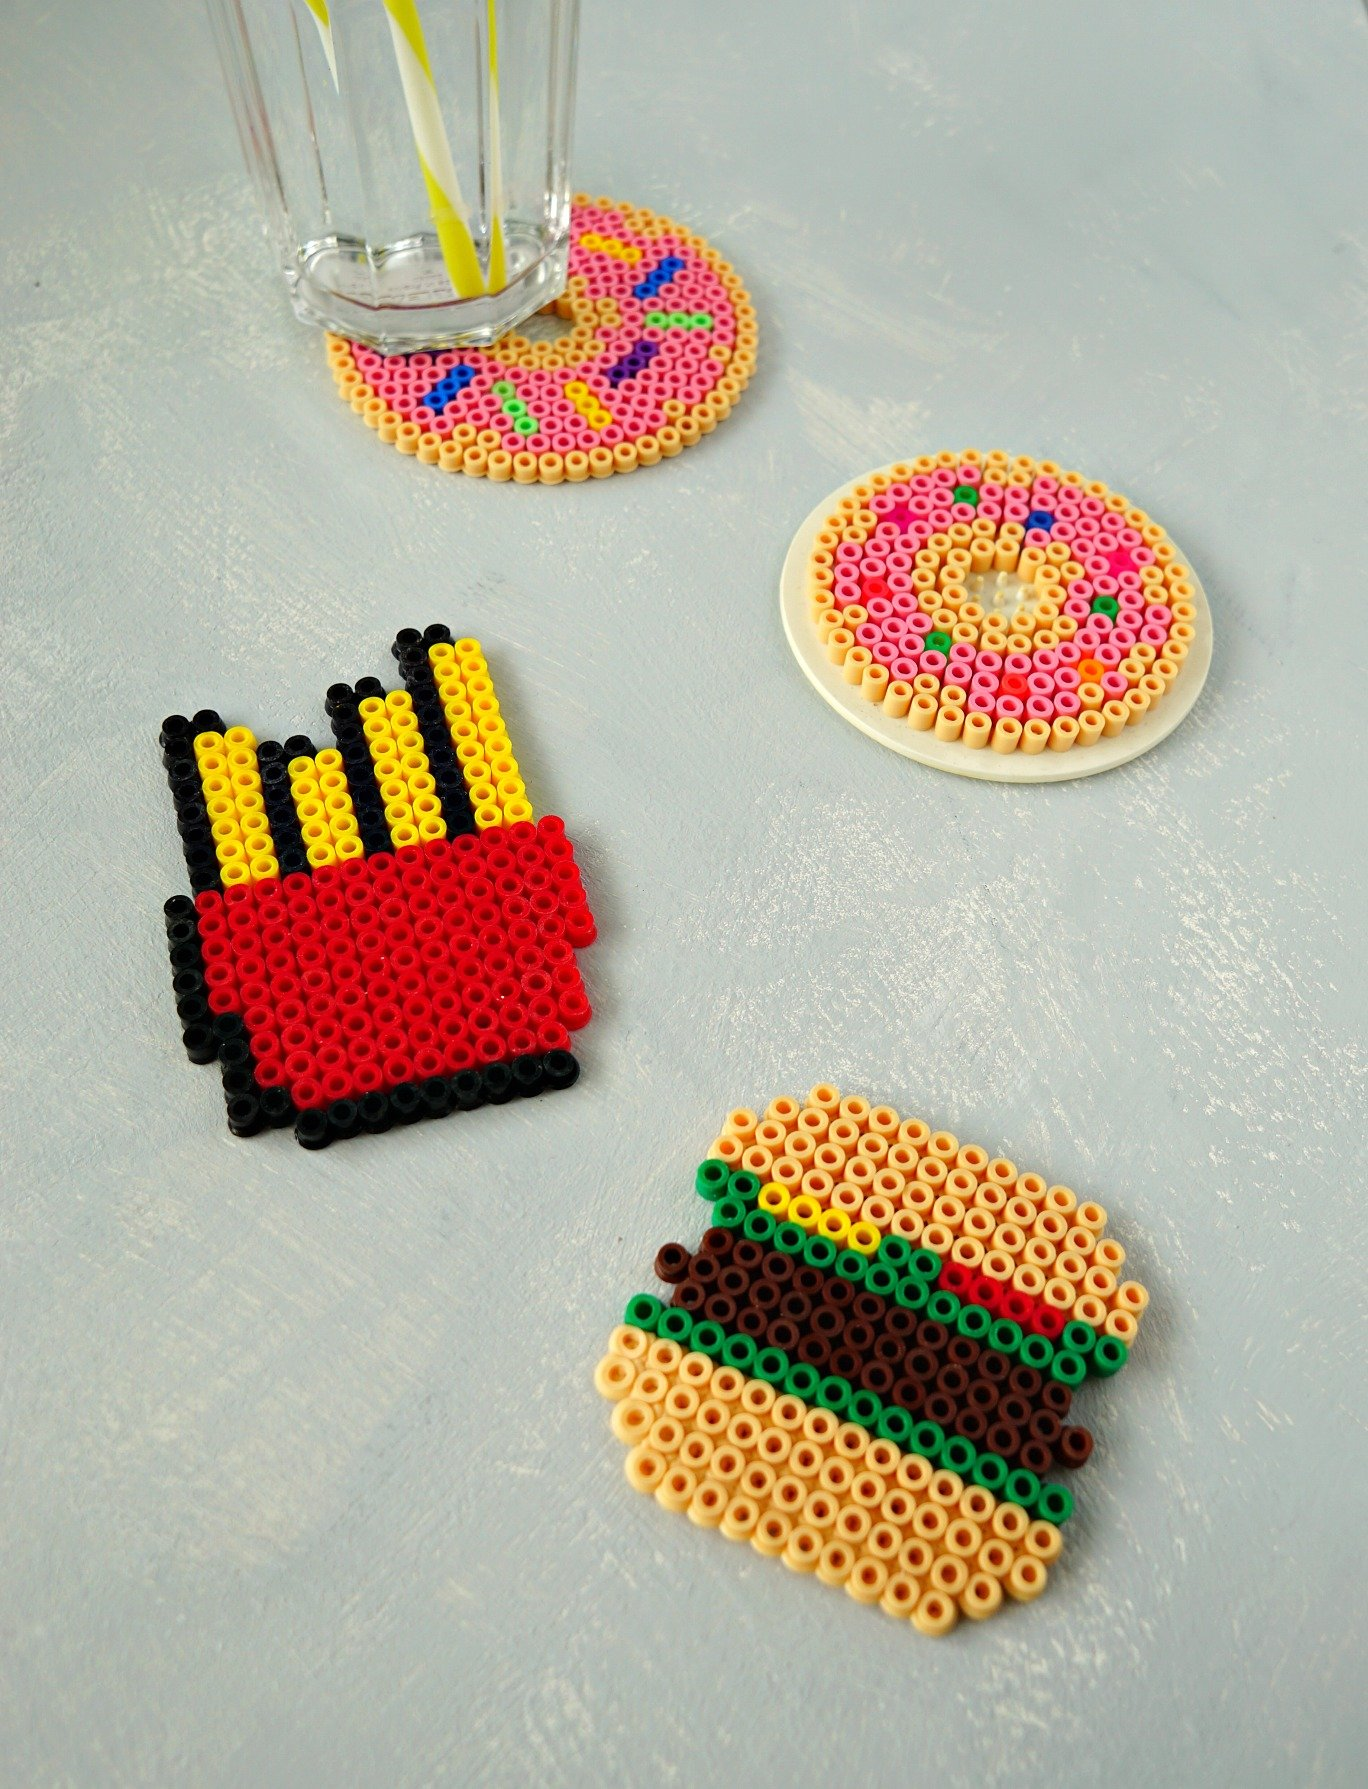 DIY Fast Food Perler Bead Coasters - The Makeup Dummy